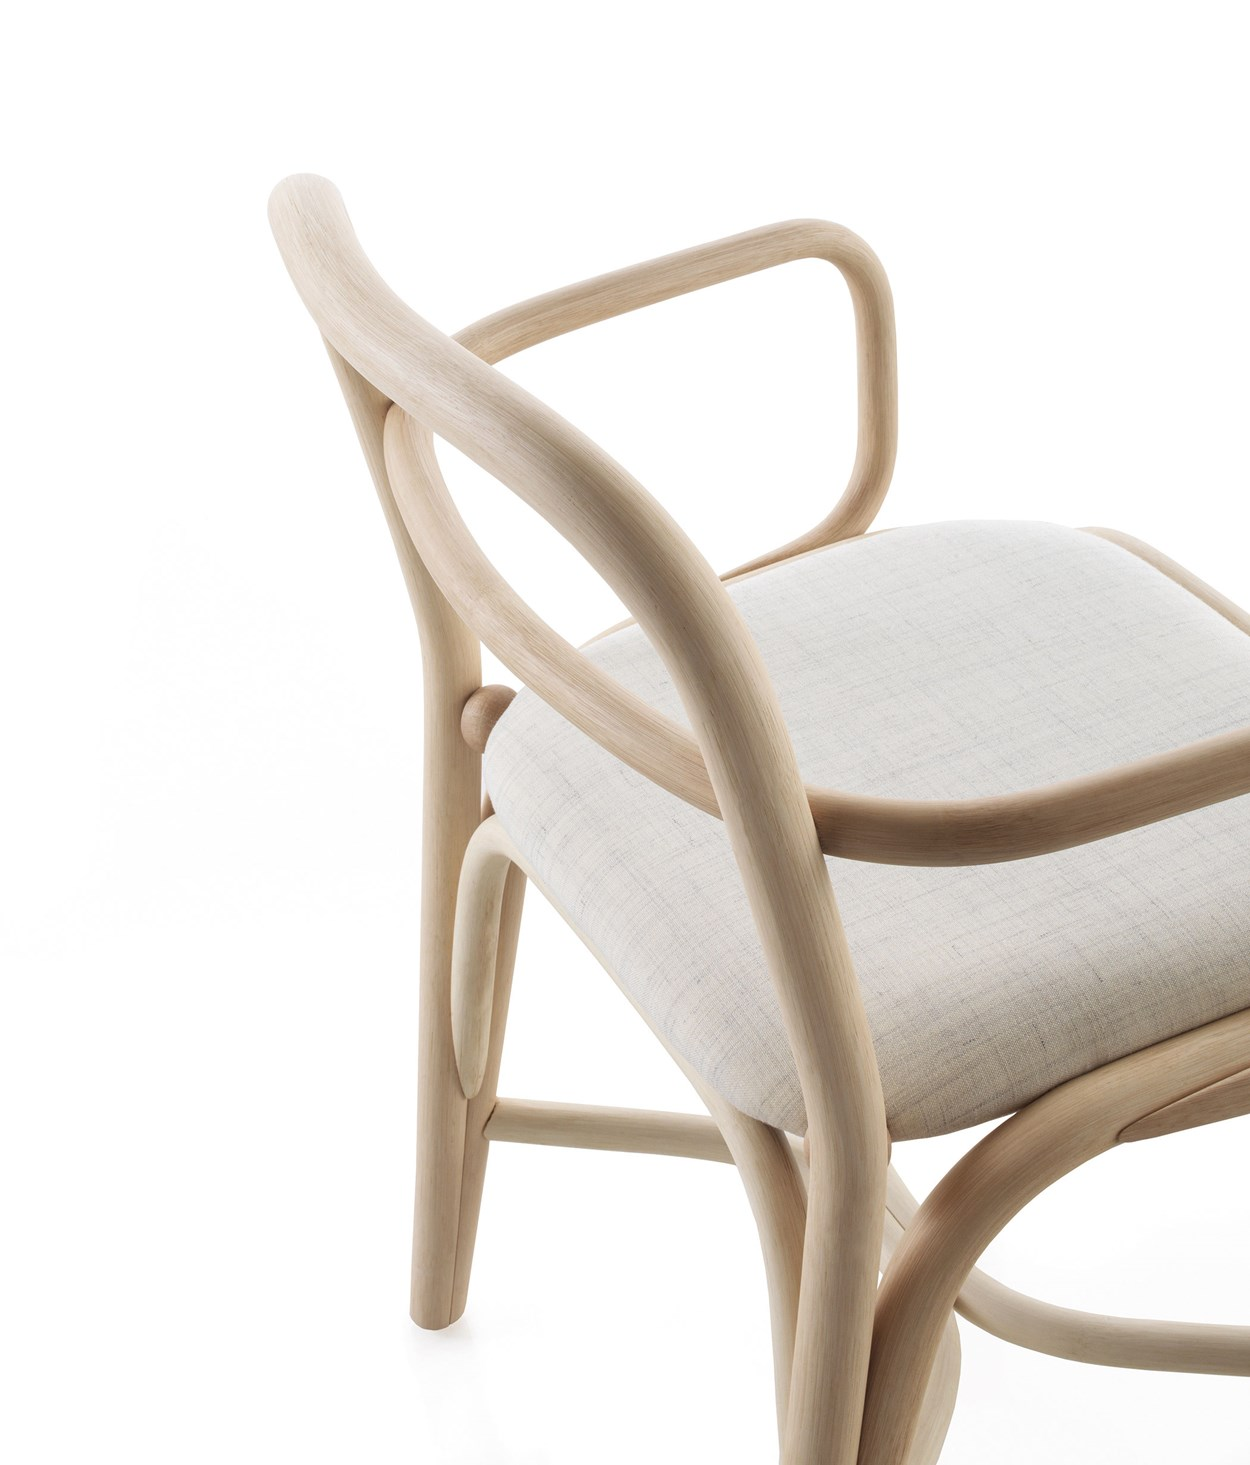 39-expormim-fontal-indoor-chair-oscar-tusquets-blanca.jpg